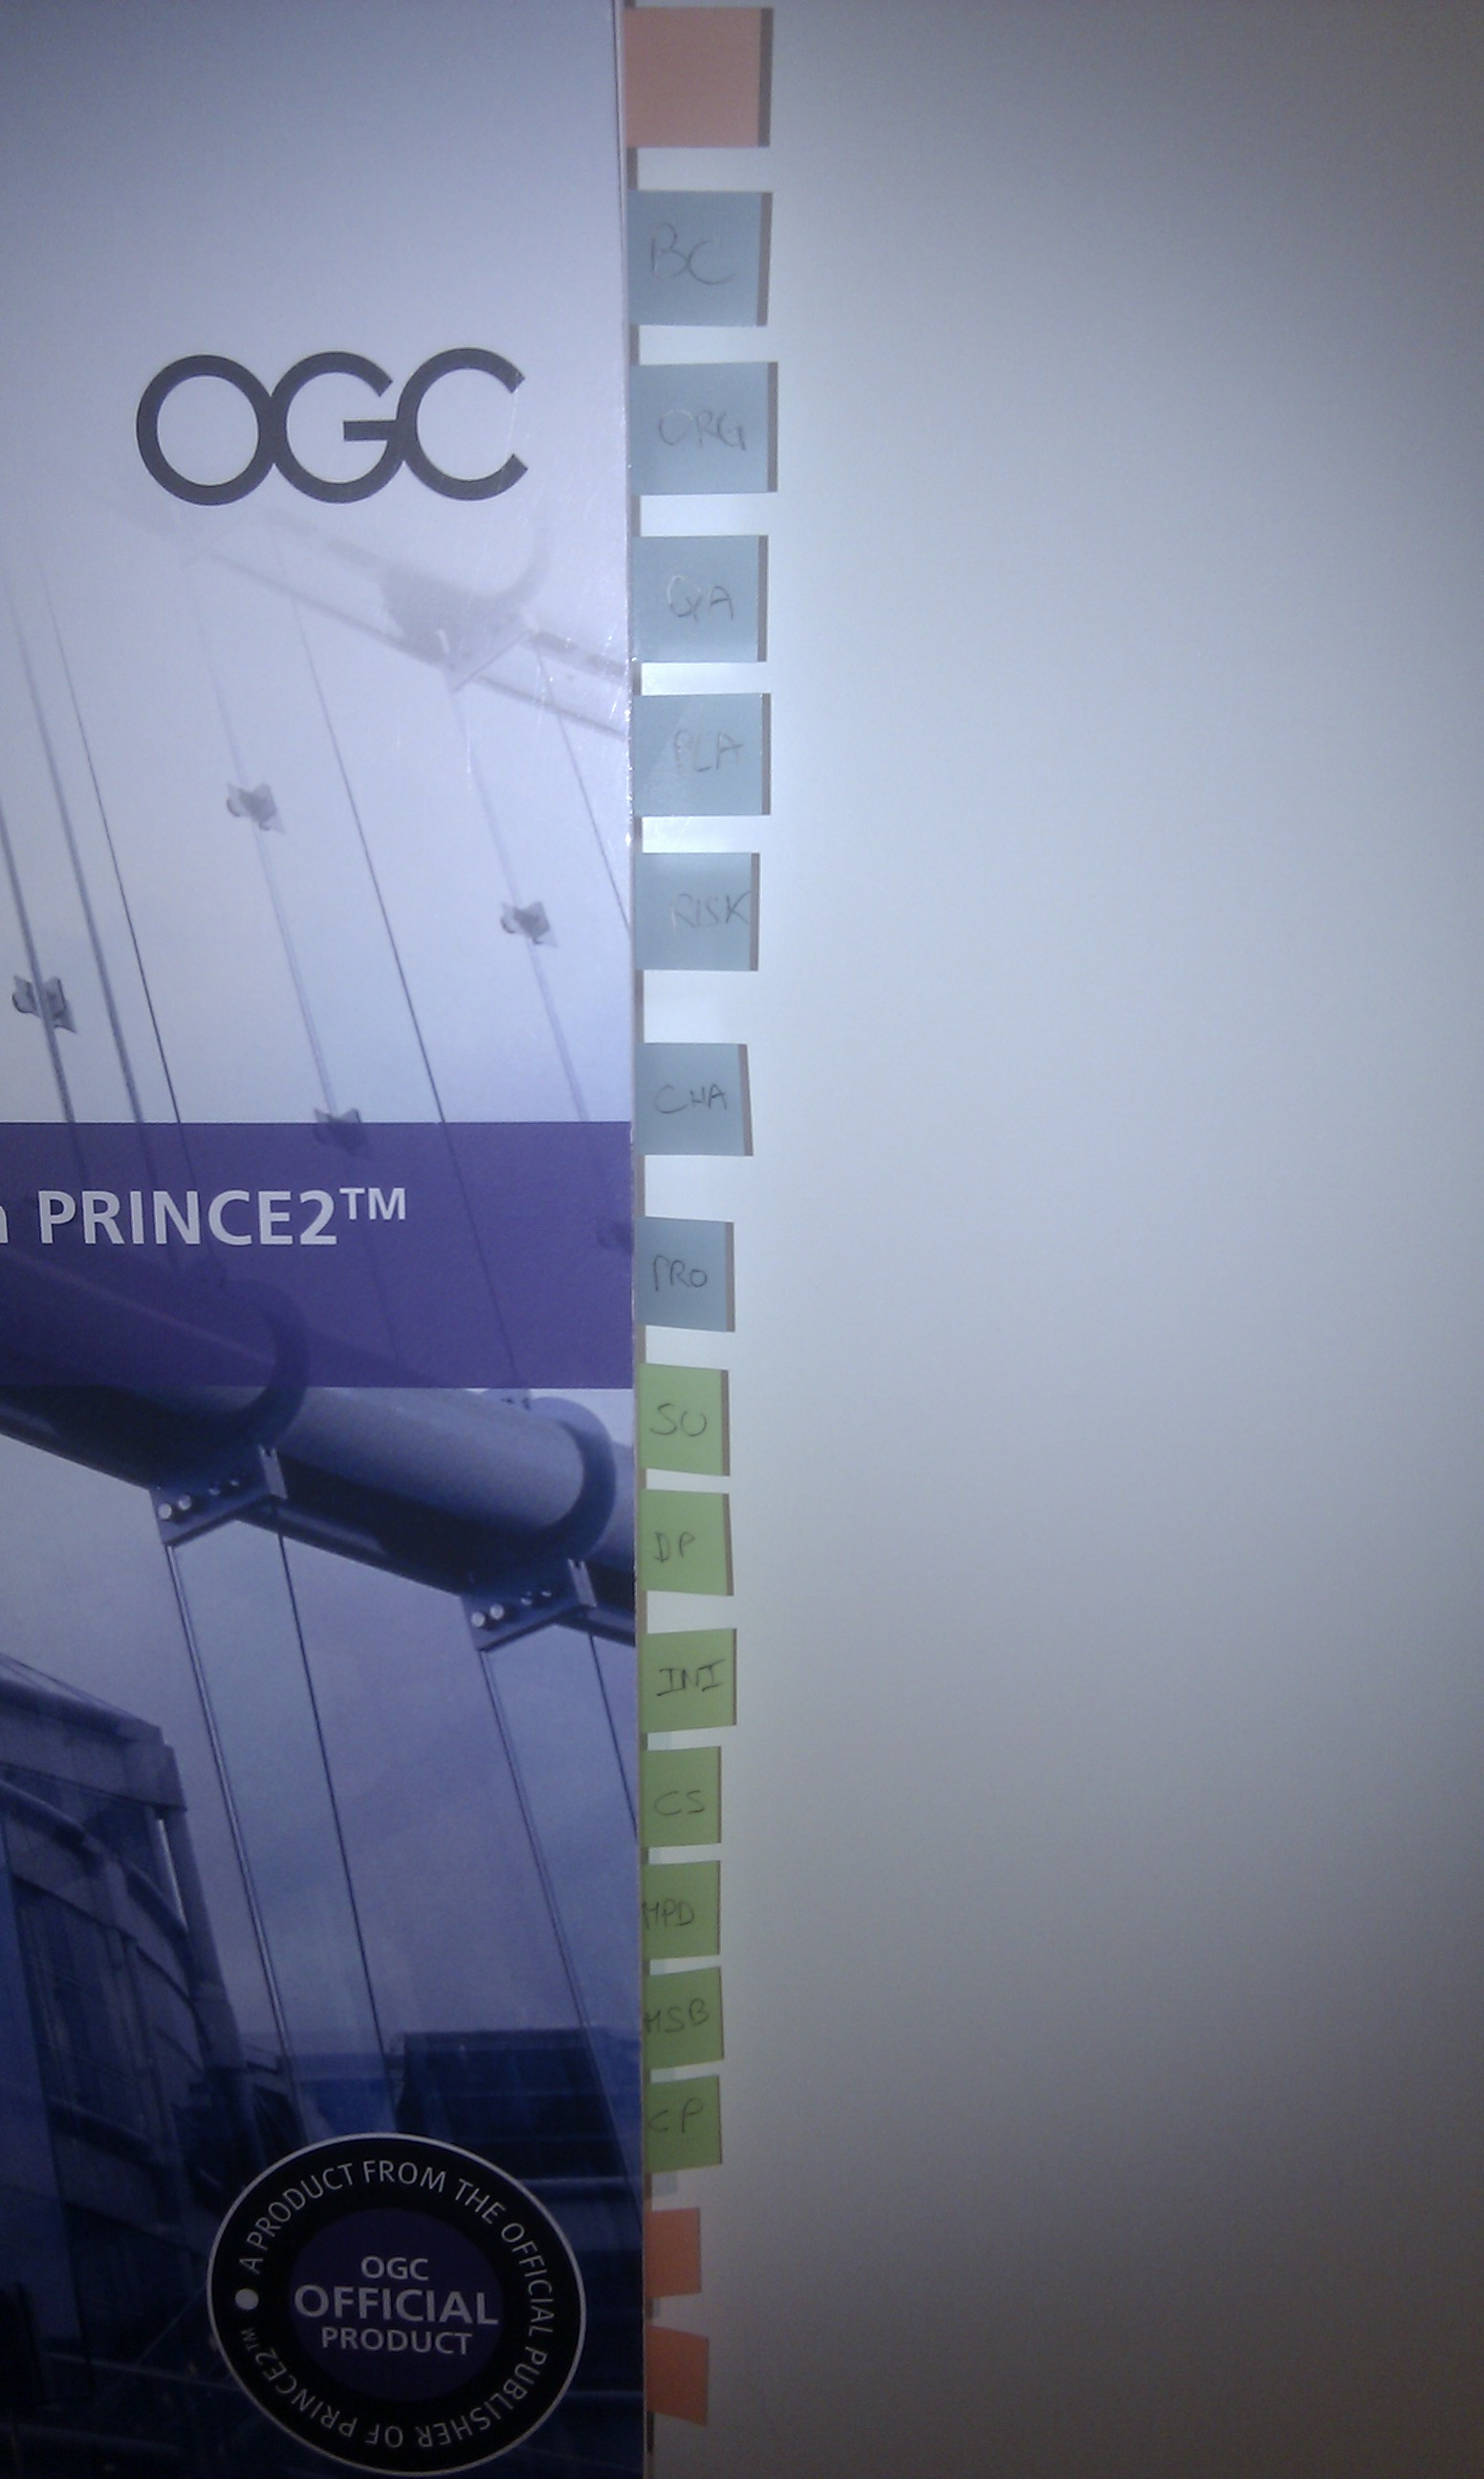 Managing Successful Projects With Prince2 2009 Edition Manual Pdf